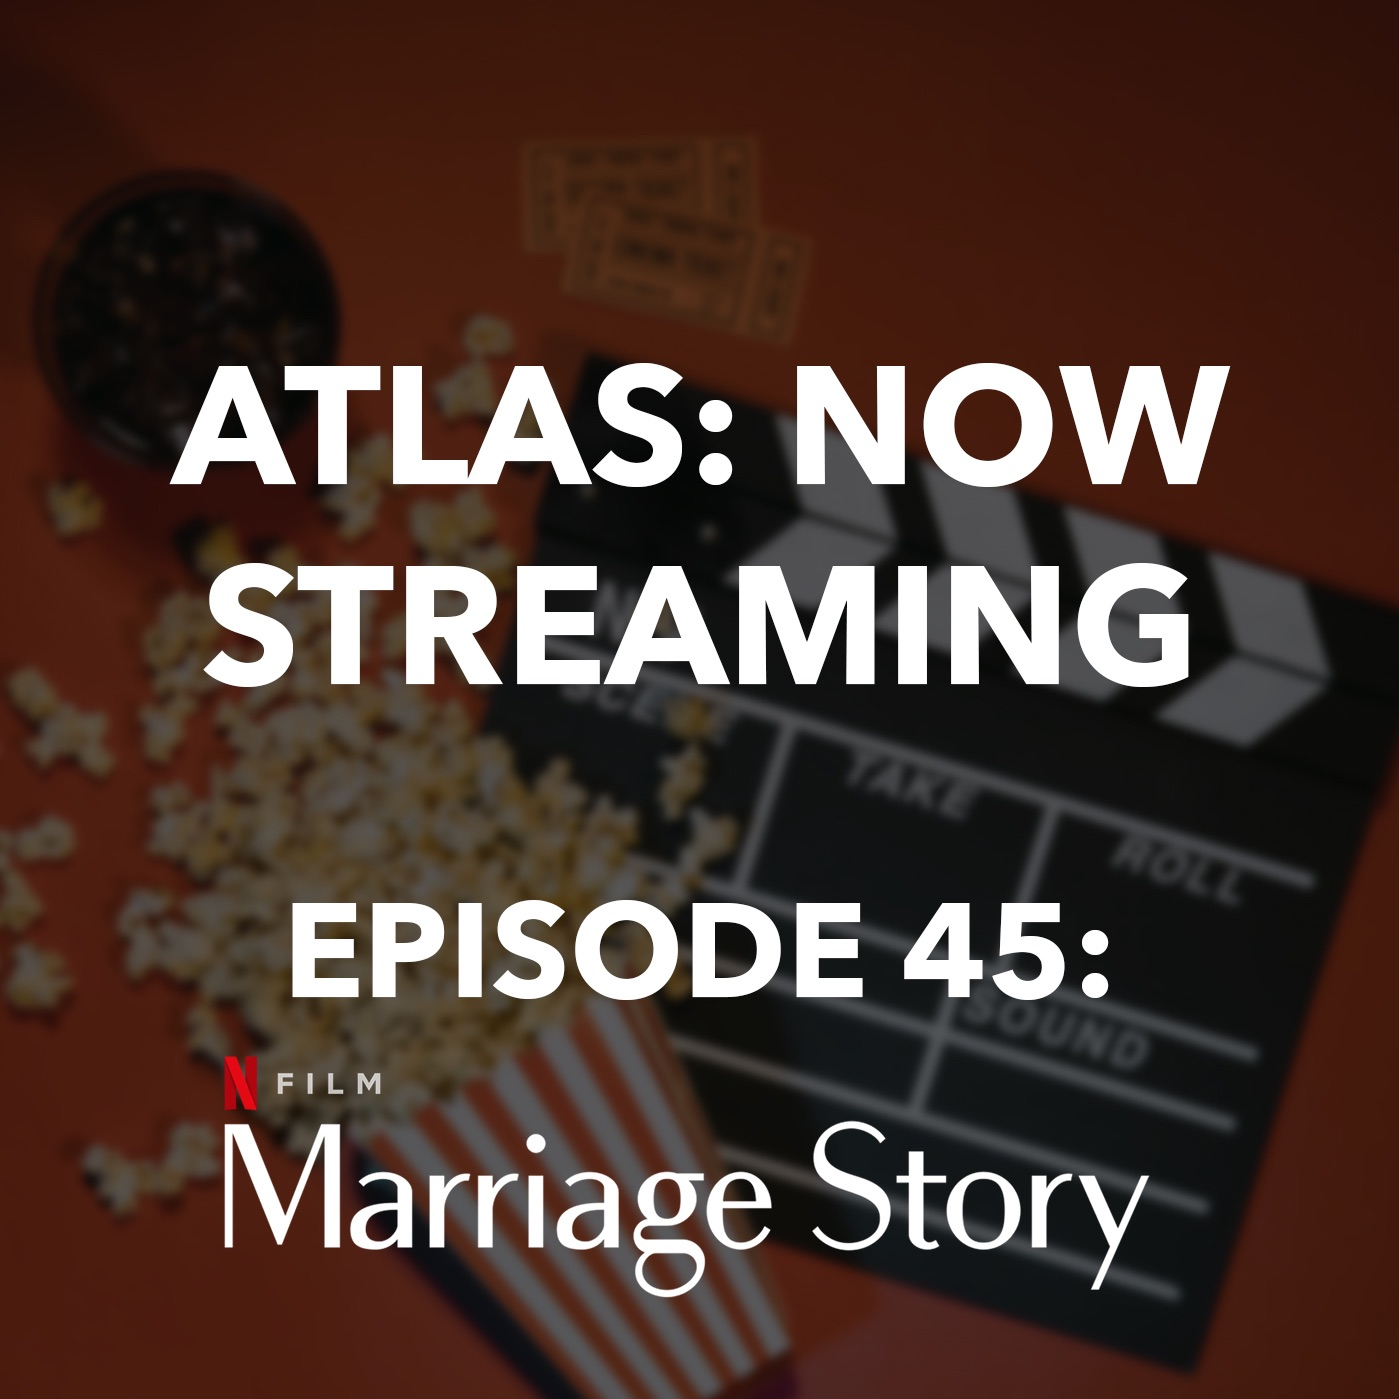 Marriage Story - Atlas: Now Streaming Episode 45